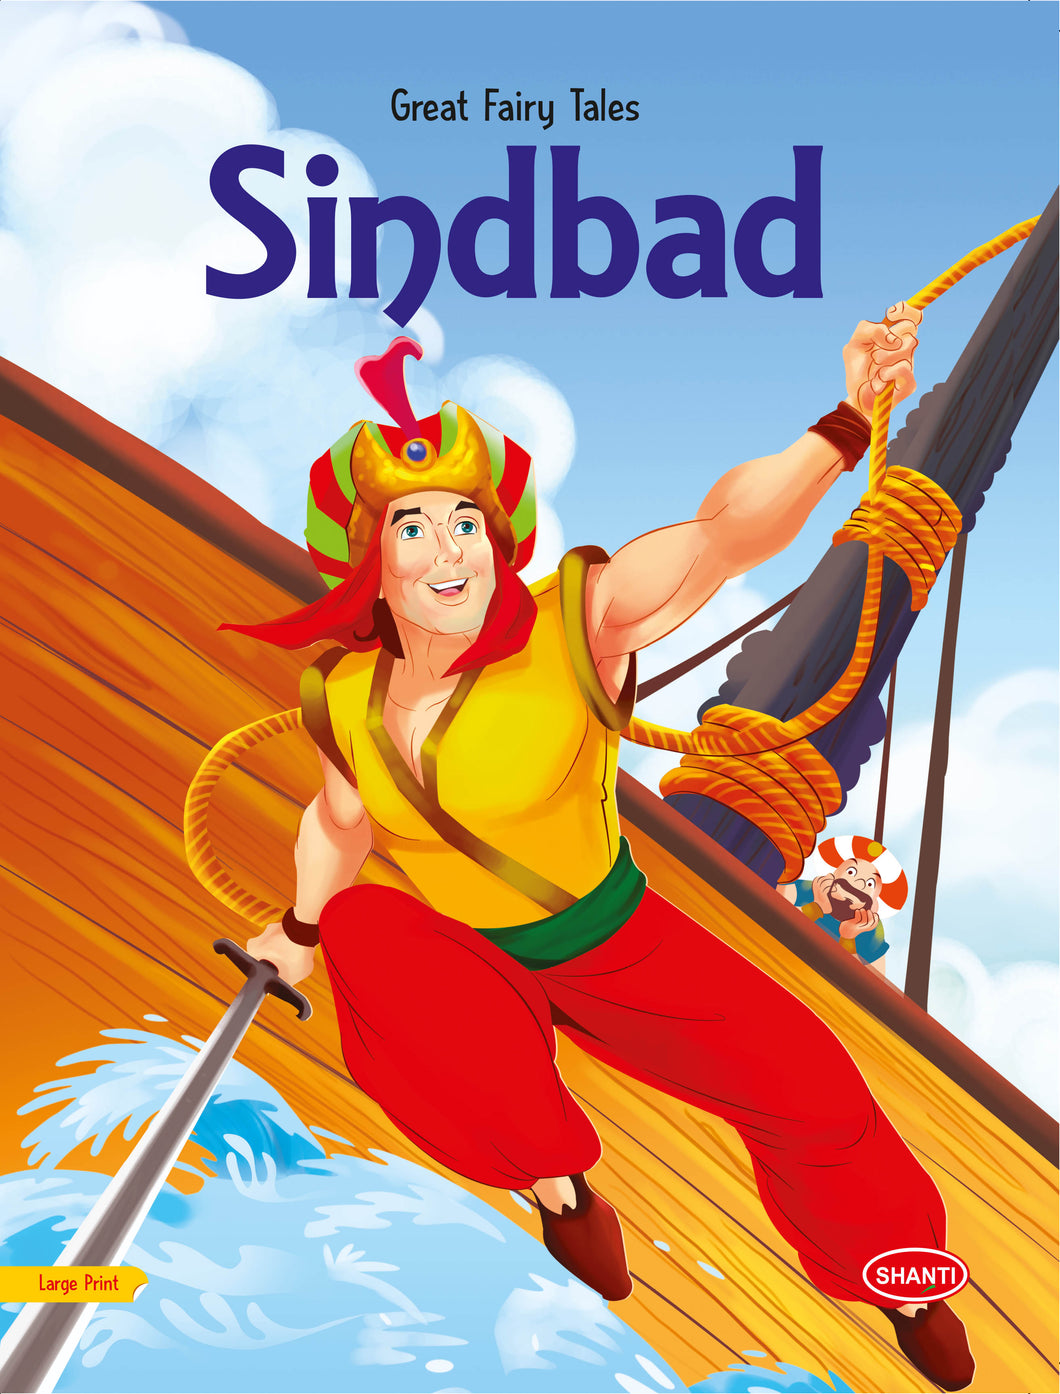 Fairy Tales for Kids-Great Fairy Tales - Sindbad